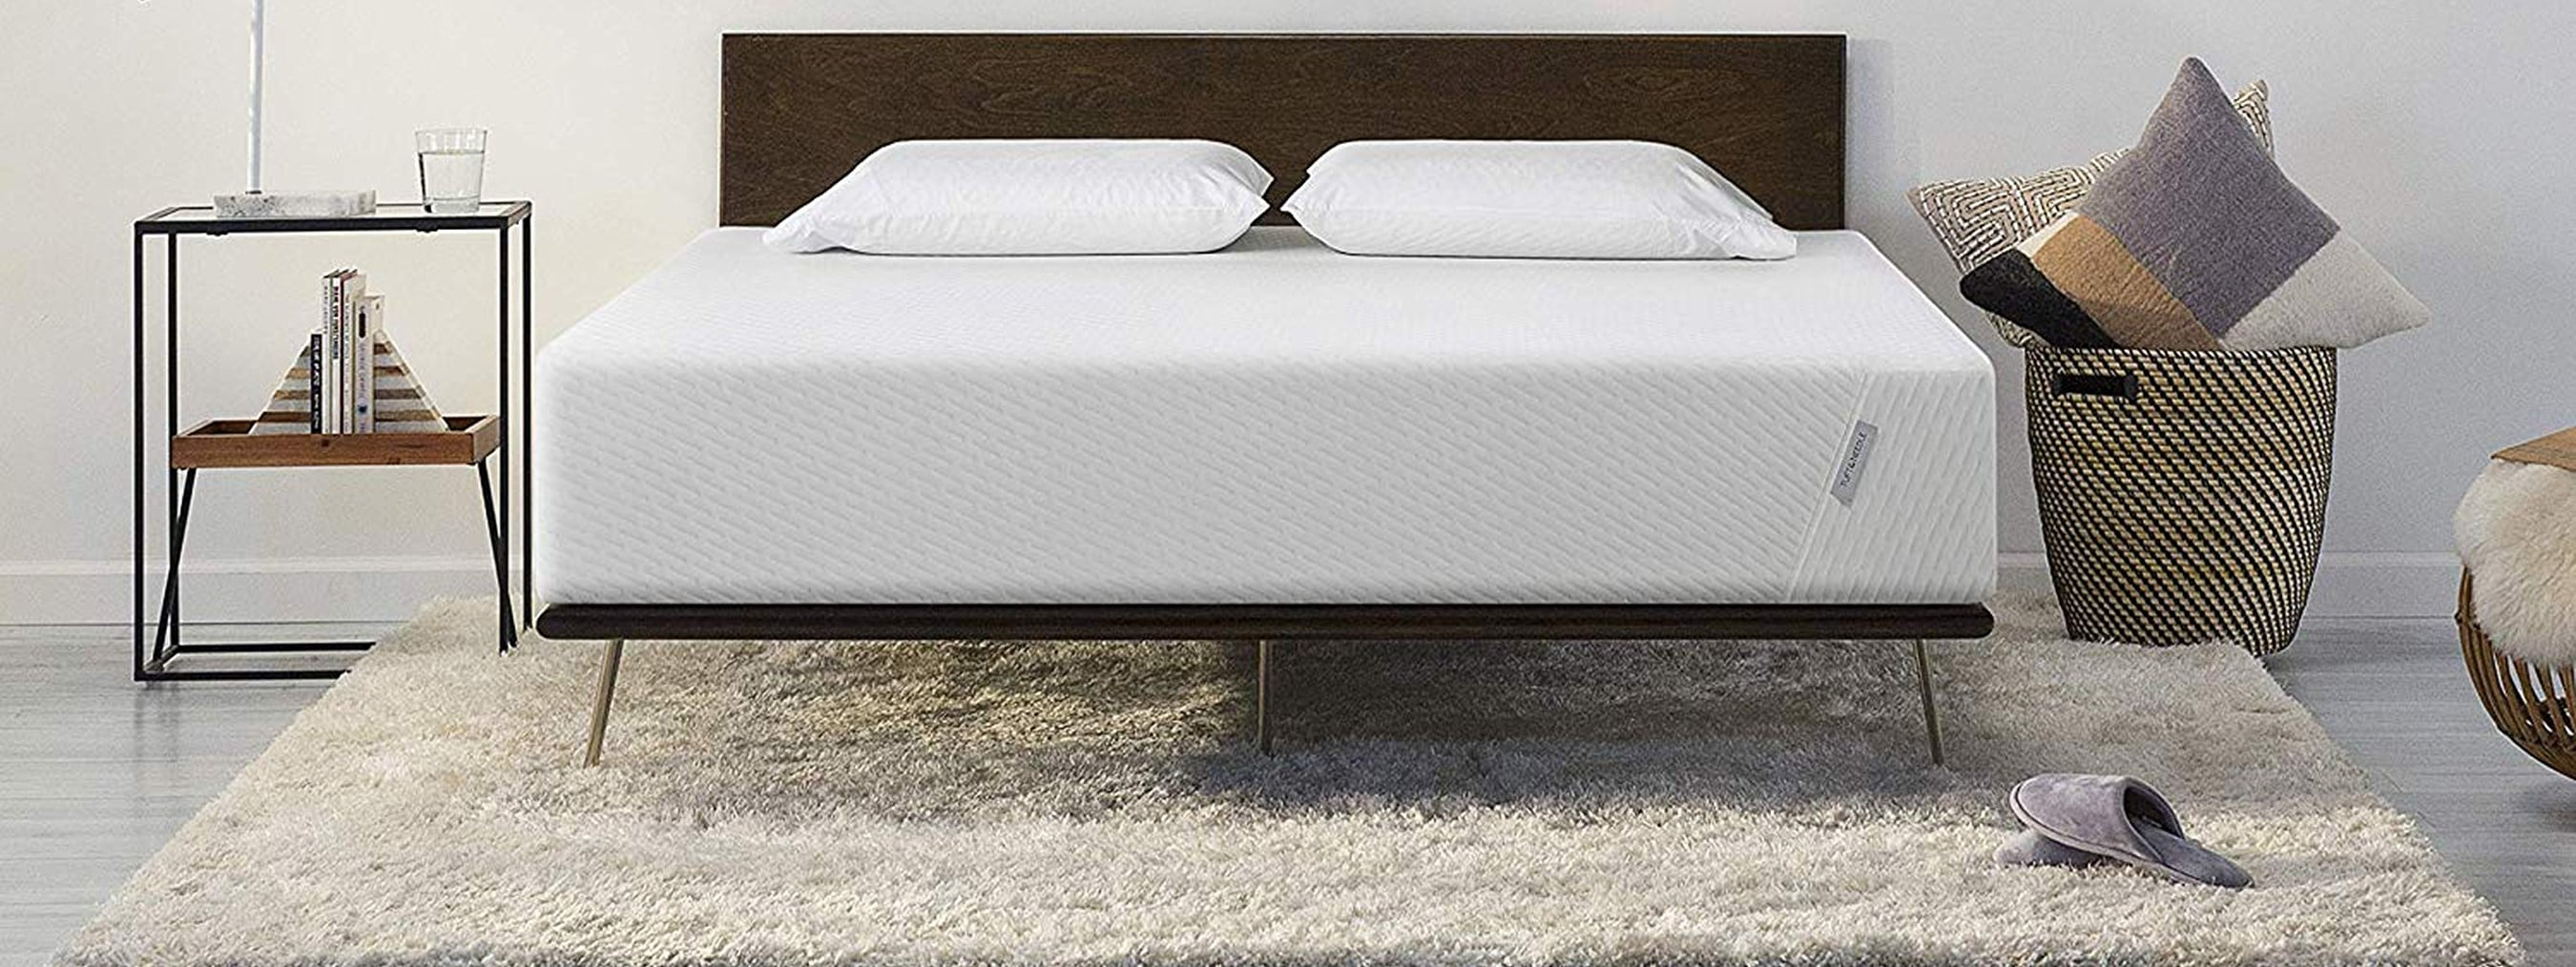 Best California King Mattresses Reviewed in Detail